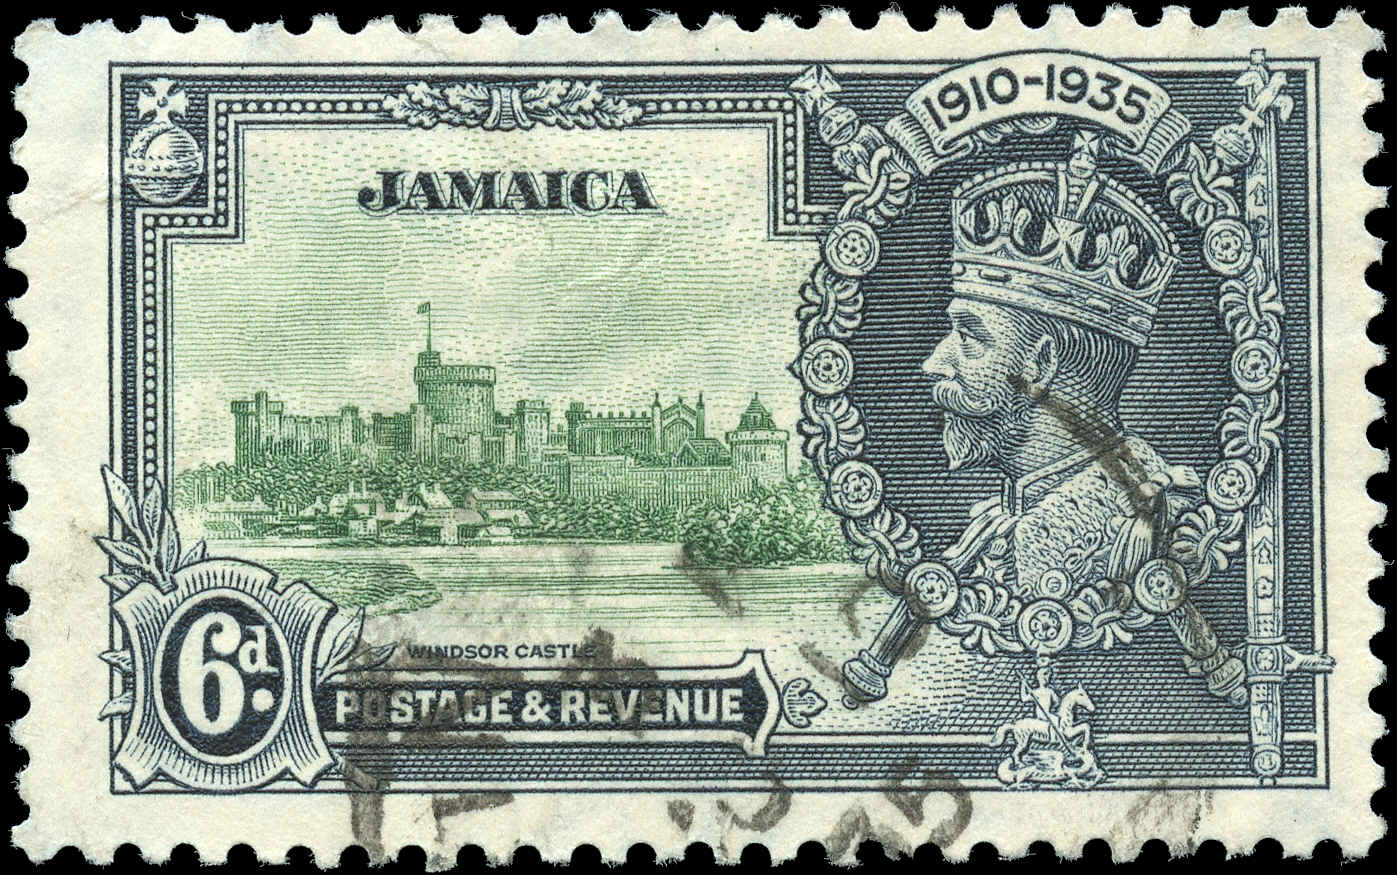 Jamaica, #111, F+, Used